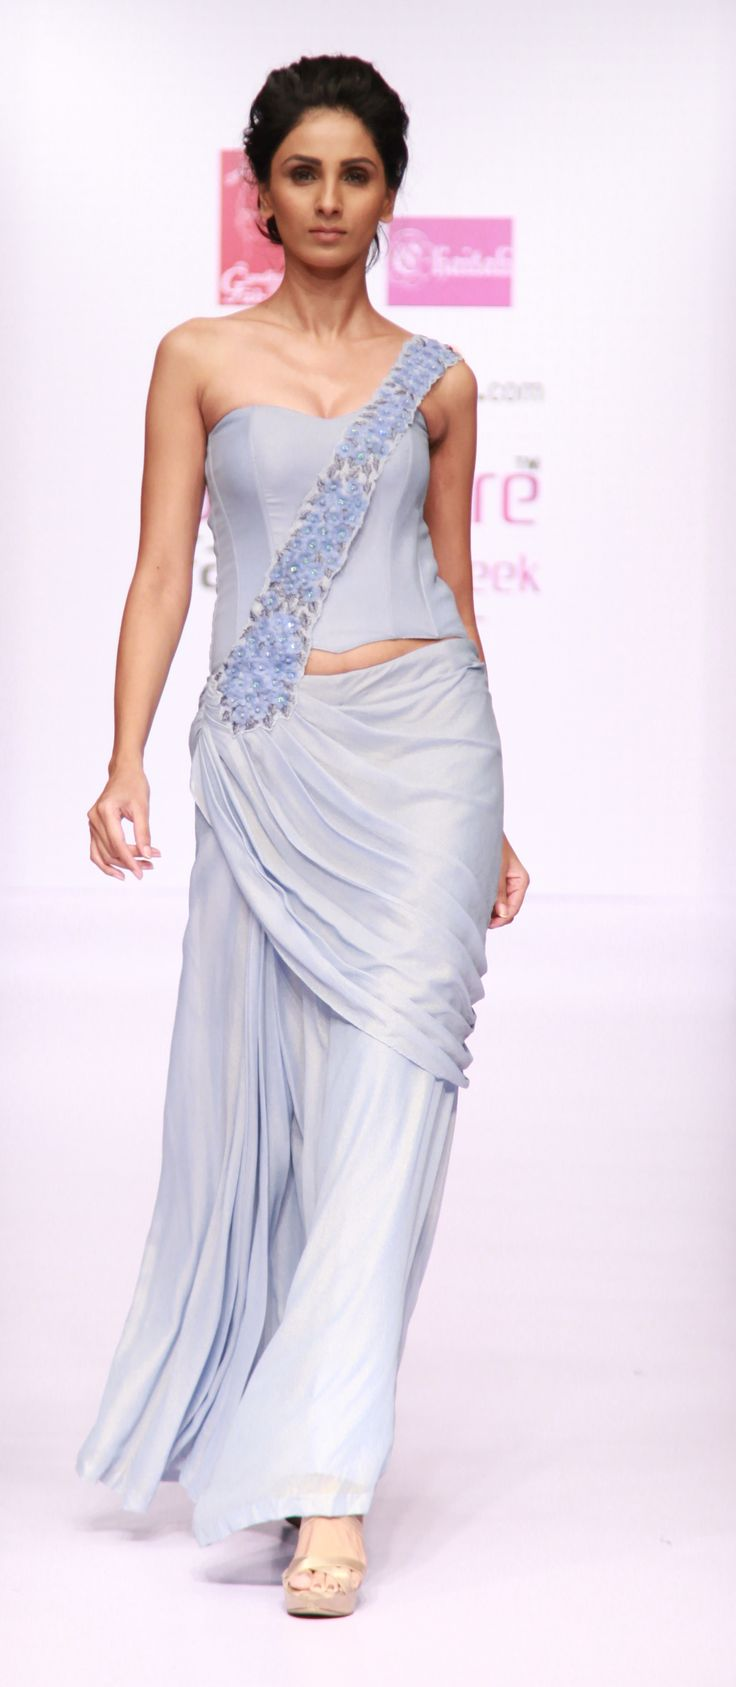 powder blue shimmer georgette ready to wear saree with embellishment of flowers and metallic threads along with sensual corset by Chaitali Jhunjhunwala